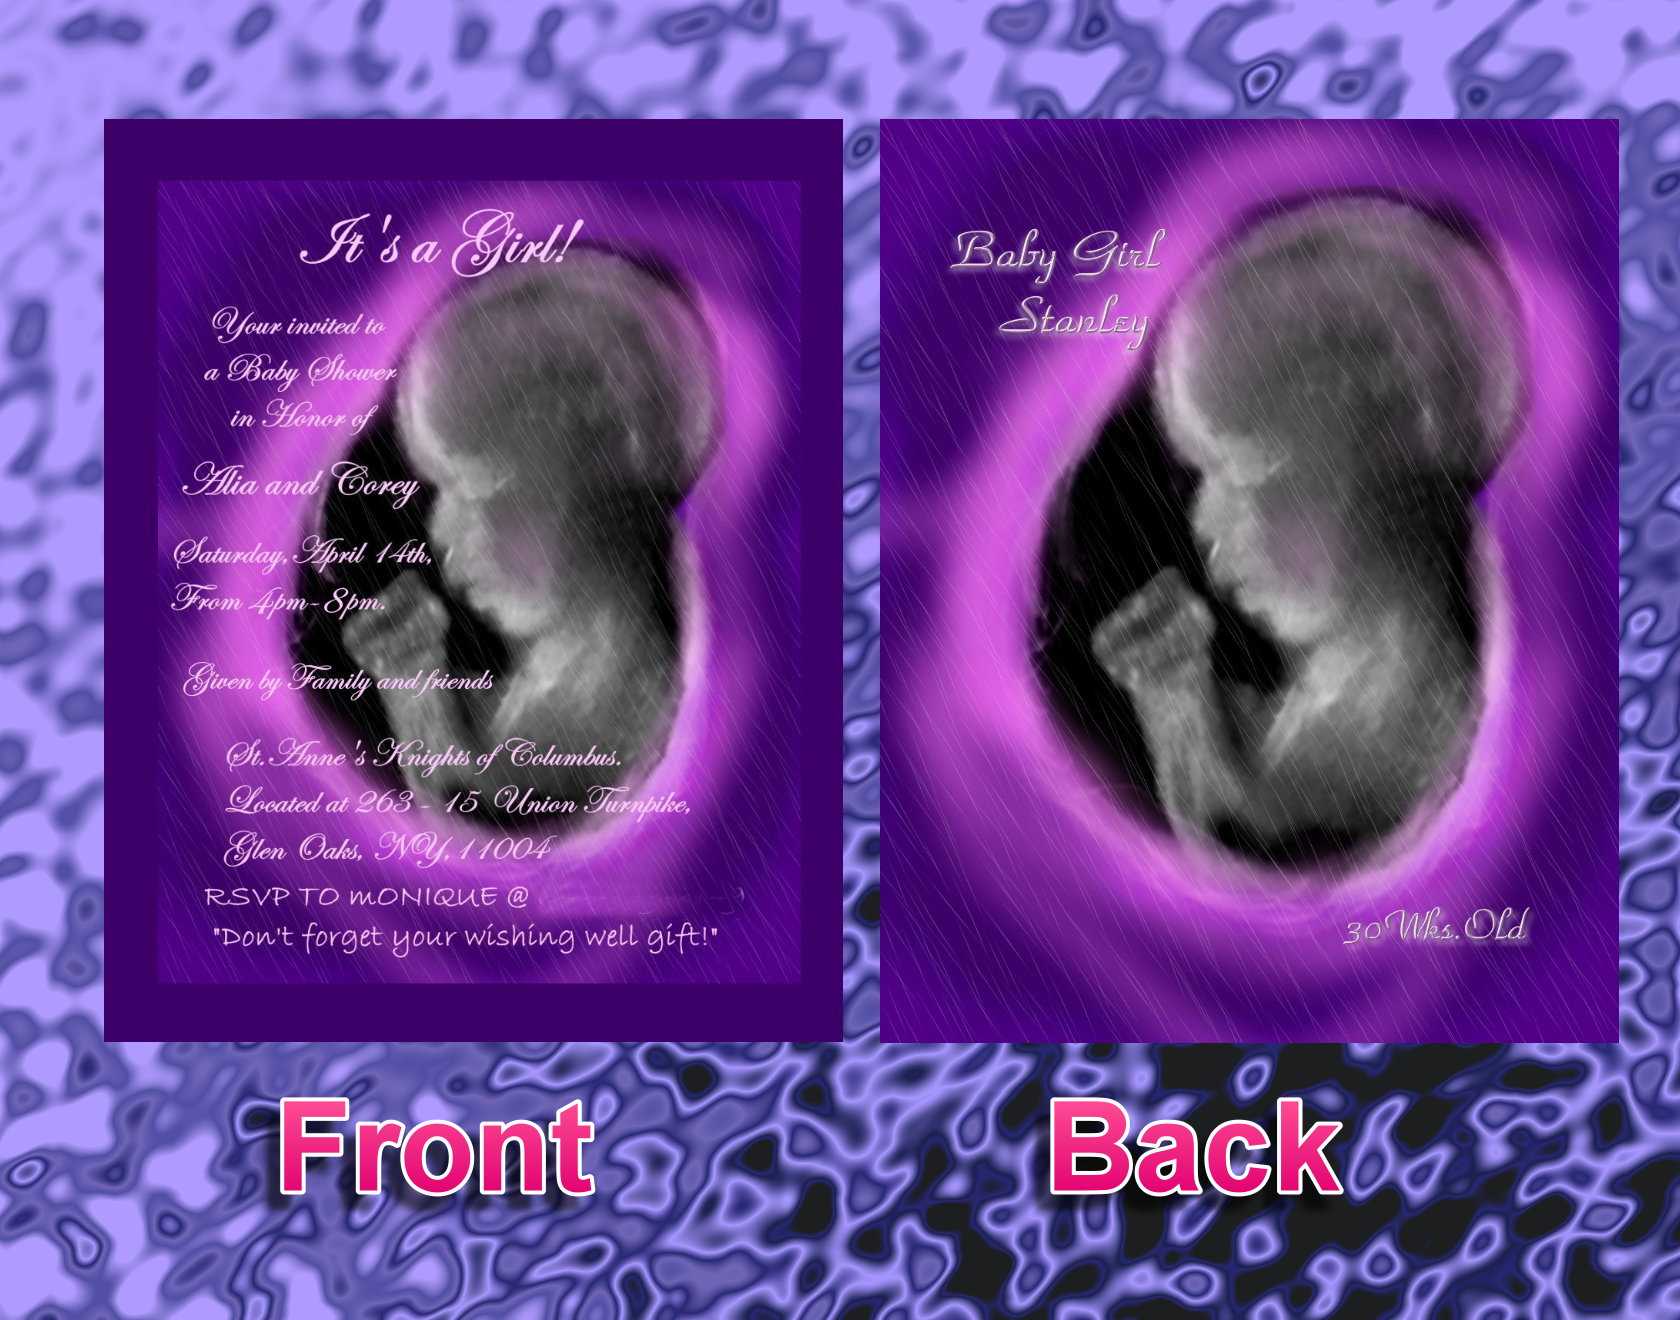 Alias Babys Shower invitations photo SonoArt Keepsake Ultrasound